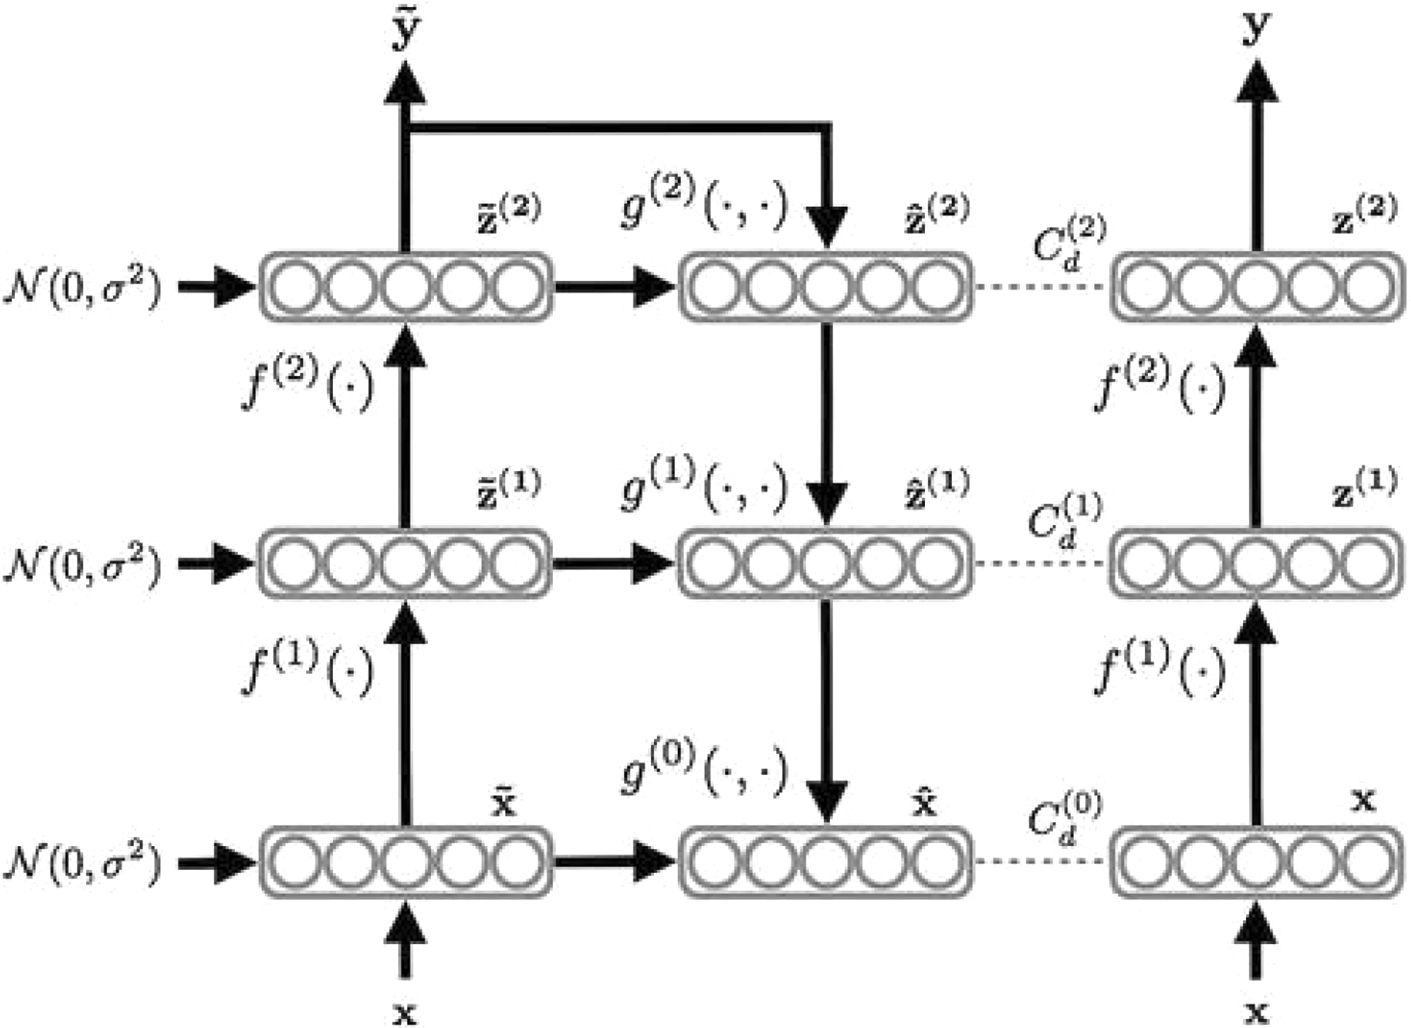 A review of various semi-supervised learning models with a deep